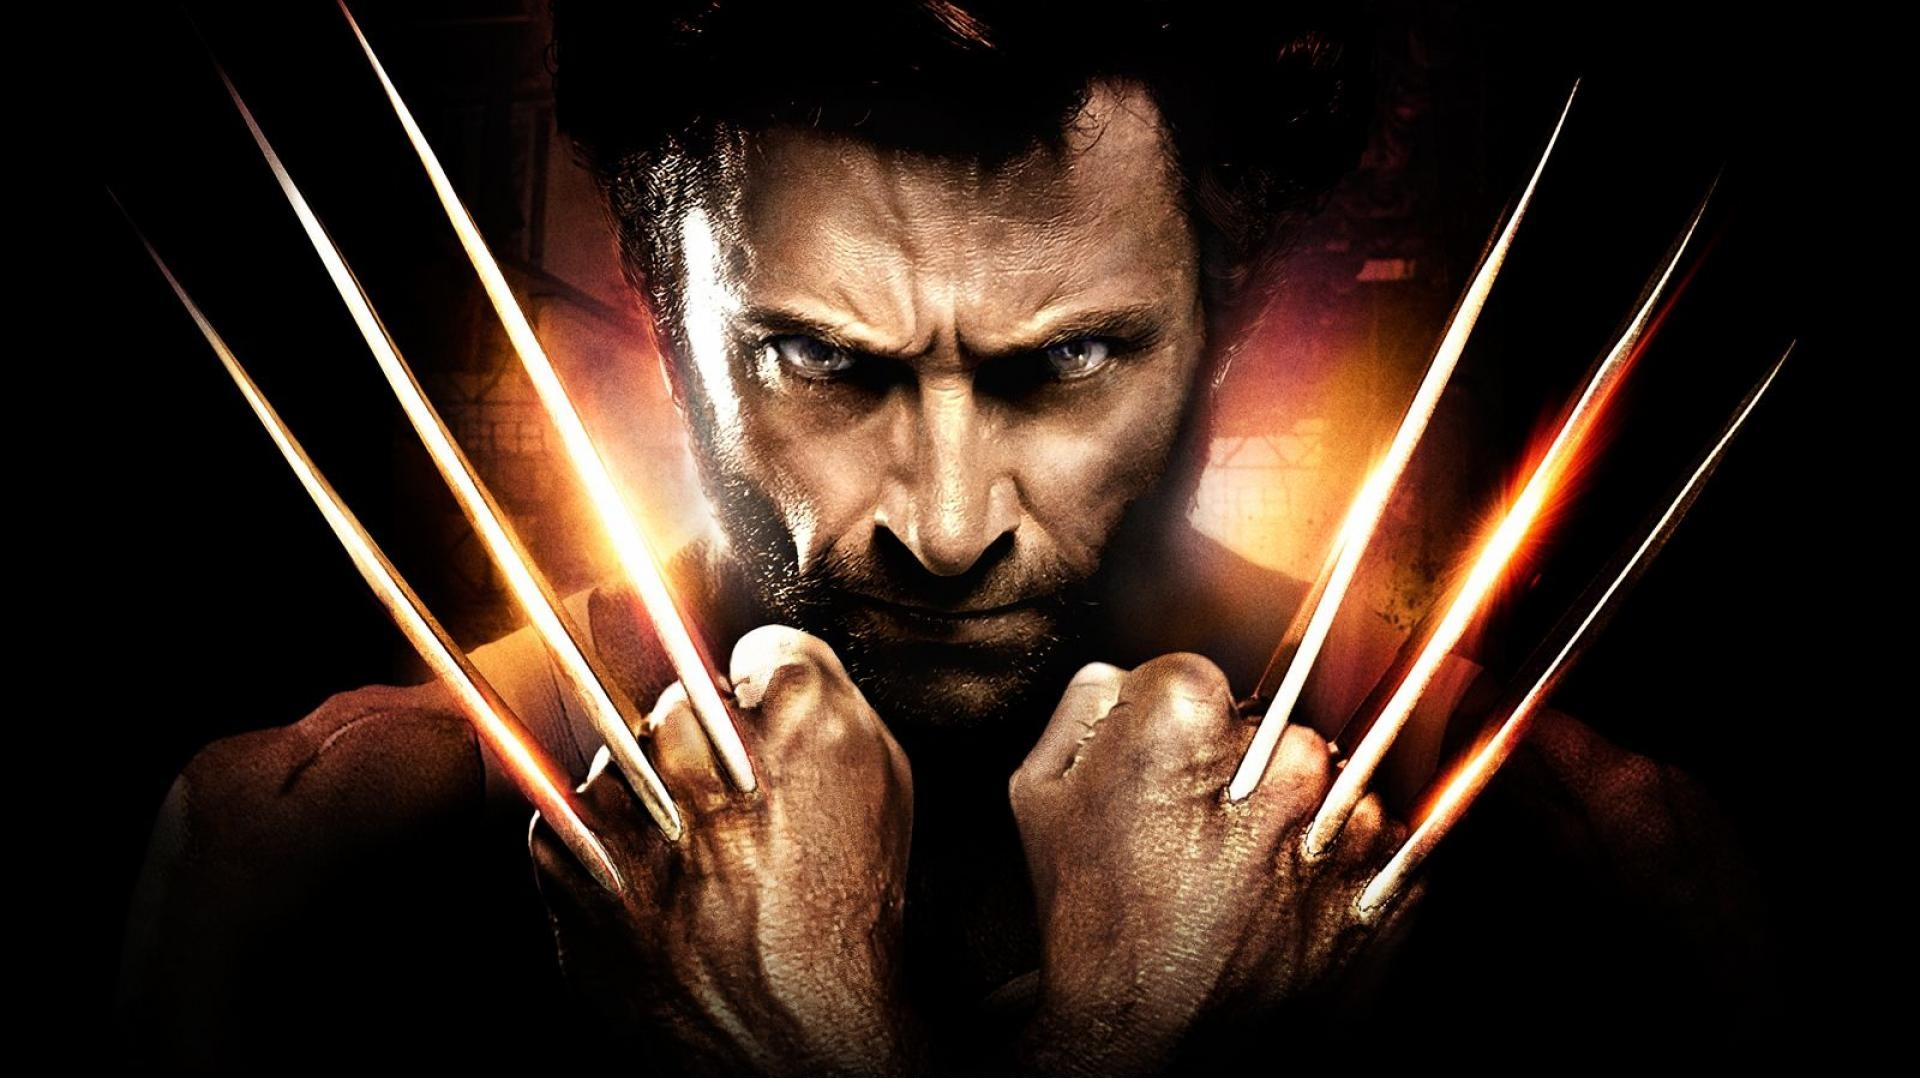 The Wolverine wallpaper 5